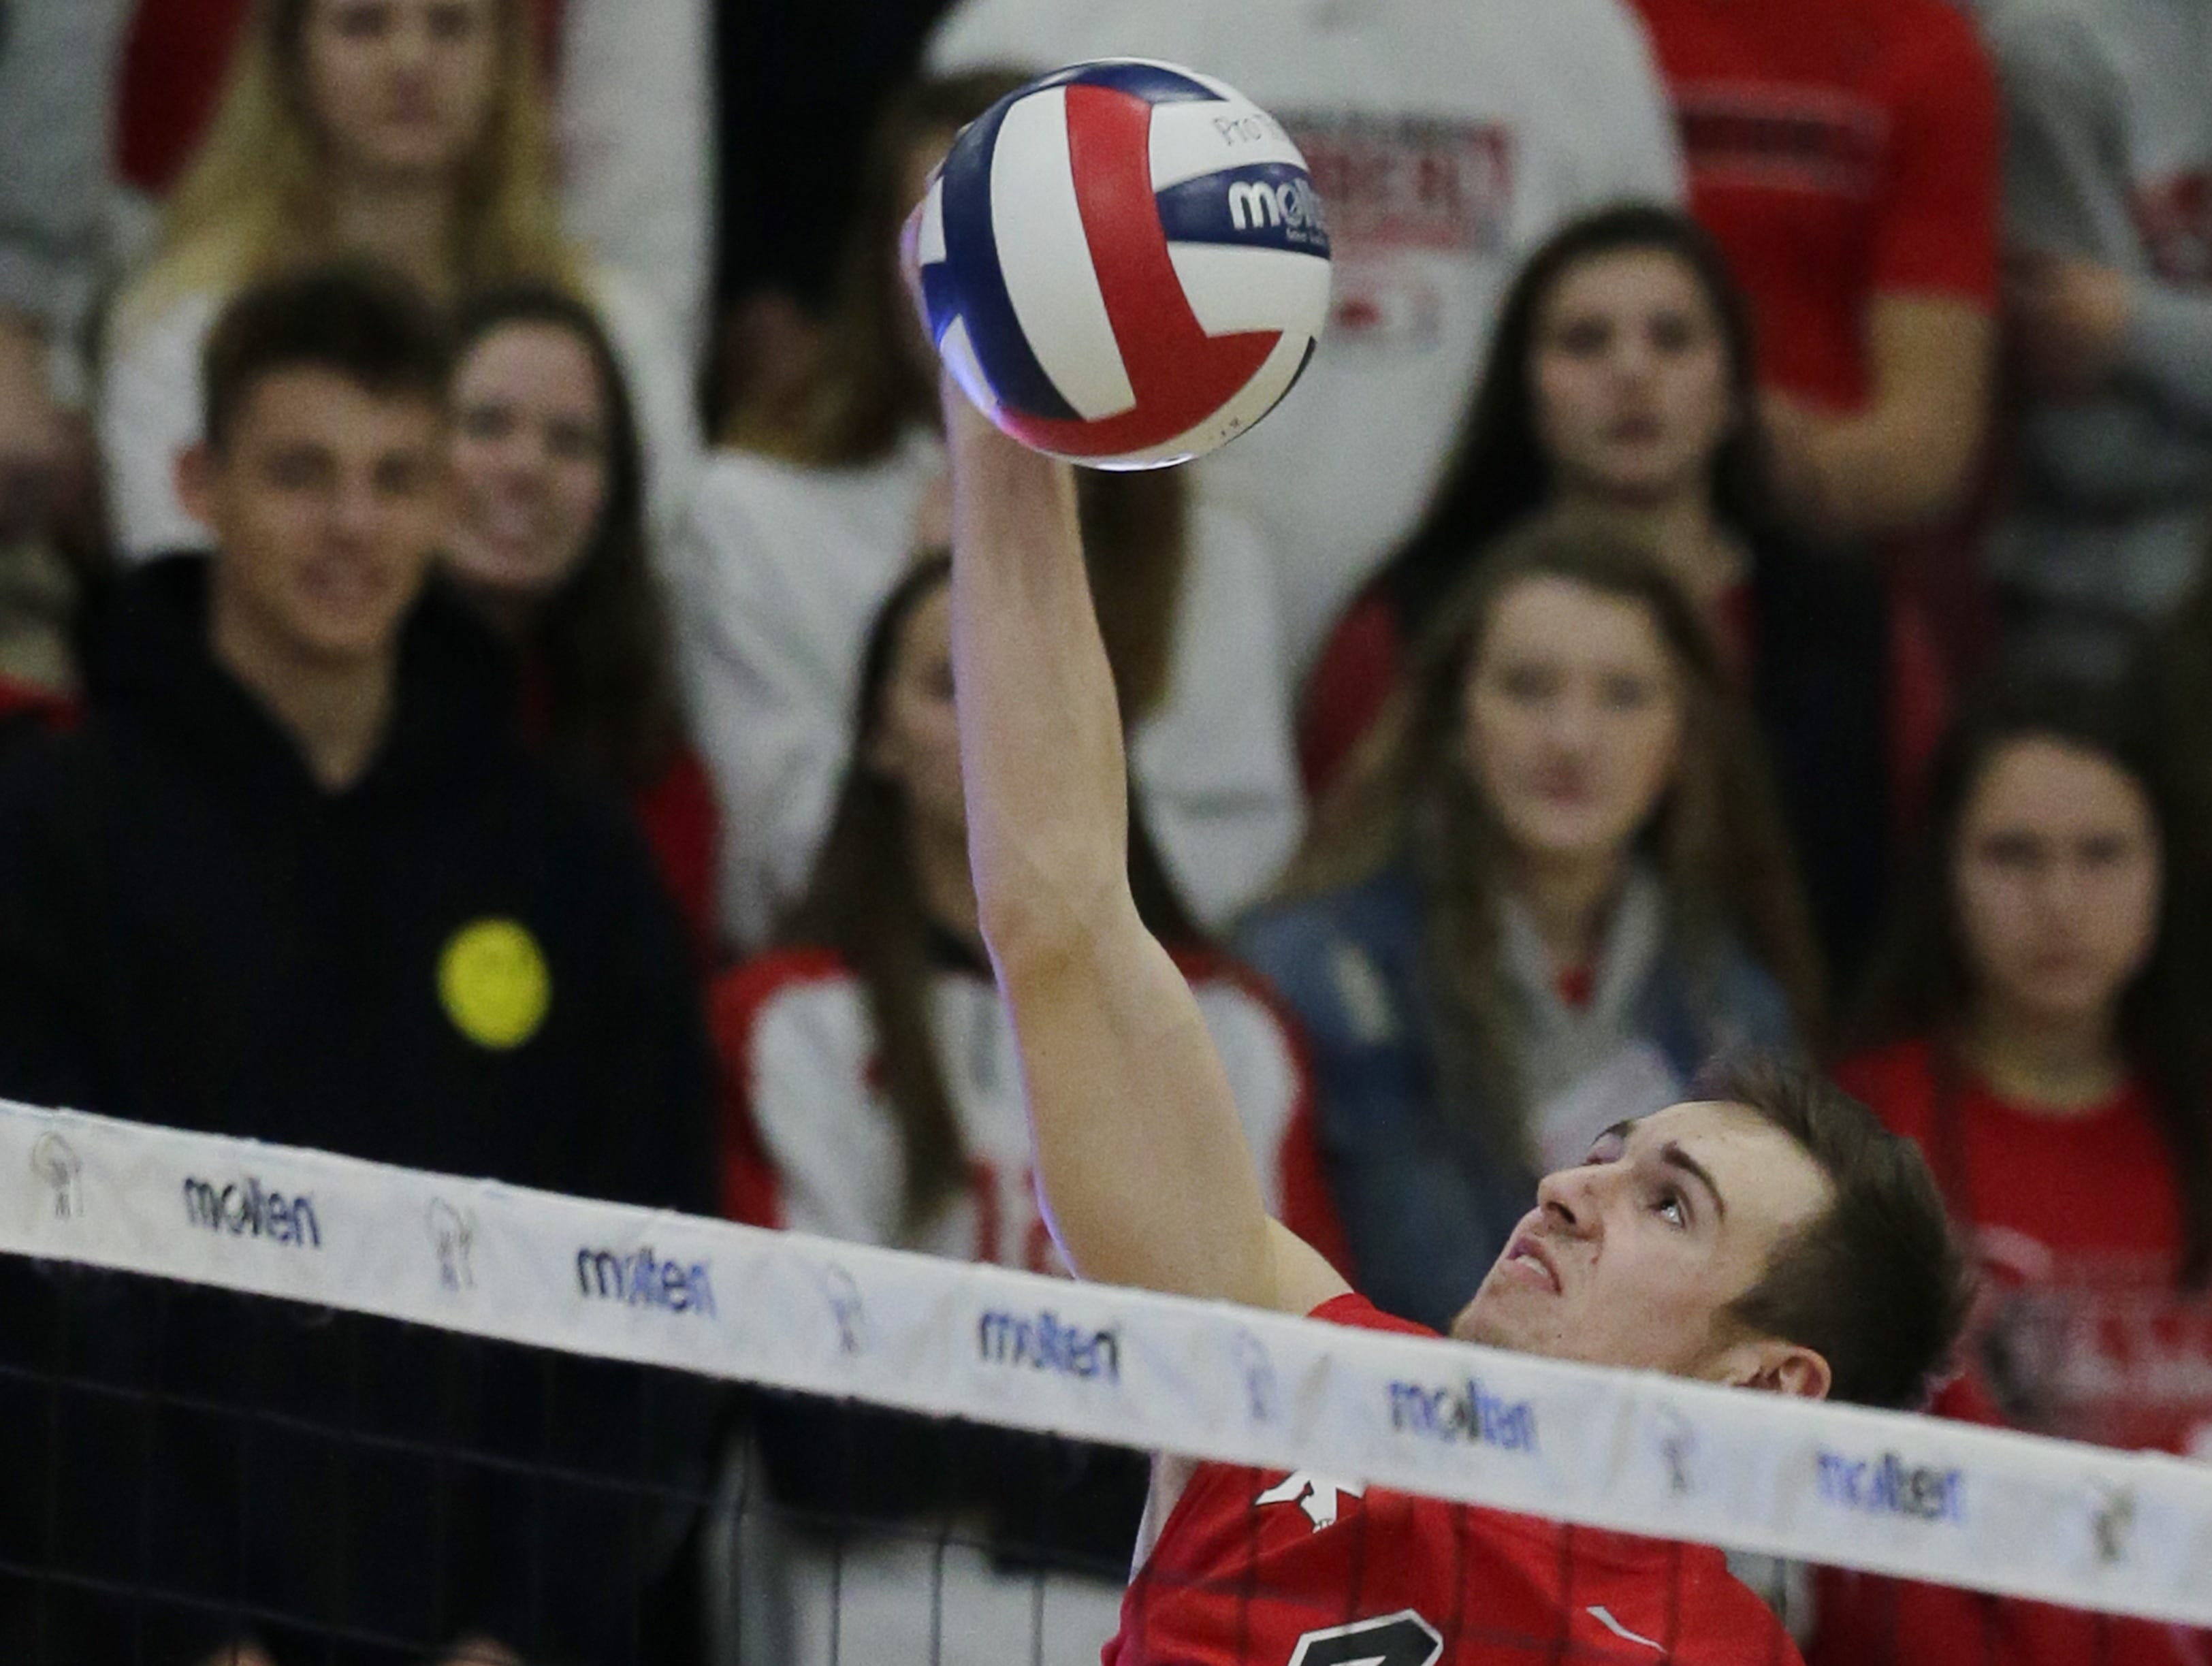 Kimberly's Trey Anderson goes up for a spike against Germantown.  Kimberly Papermakers played Germantown Warhawks in Division 1 WIAA State Boys Volleyball Championship, Saturday, November 10, 2018 at Wisconsin Lutheran College in Milwaukee, Wis. Joe Sienkiewicz/USA Today NETWORK-Wisconsin